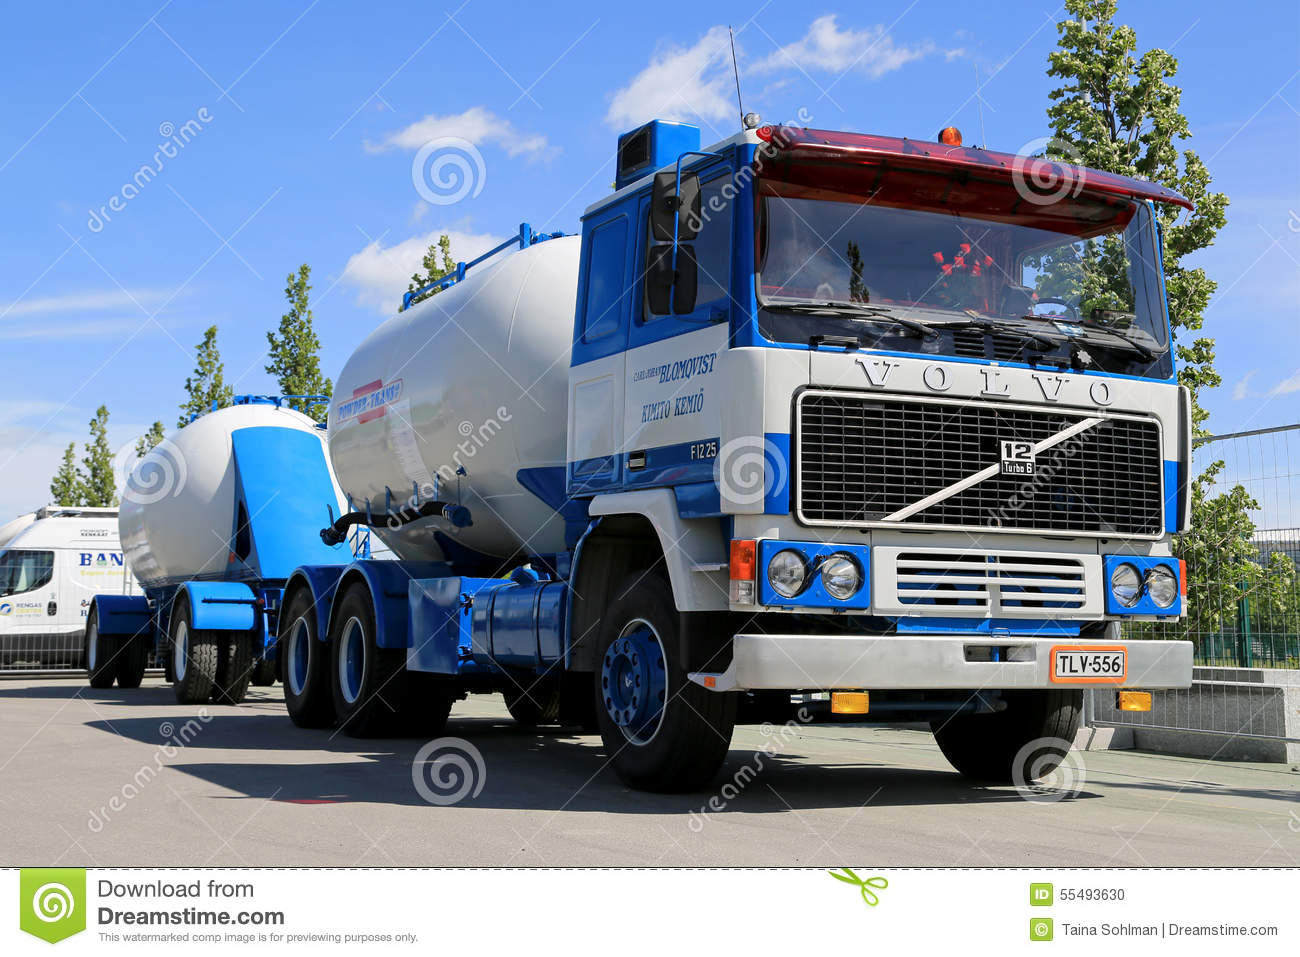 Classic Volvo F1225 Tank Truck For Bulk Transport On Display Editorial Image - Image: 55493630